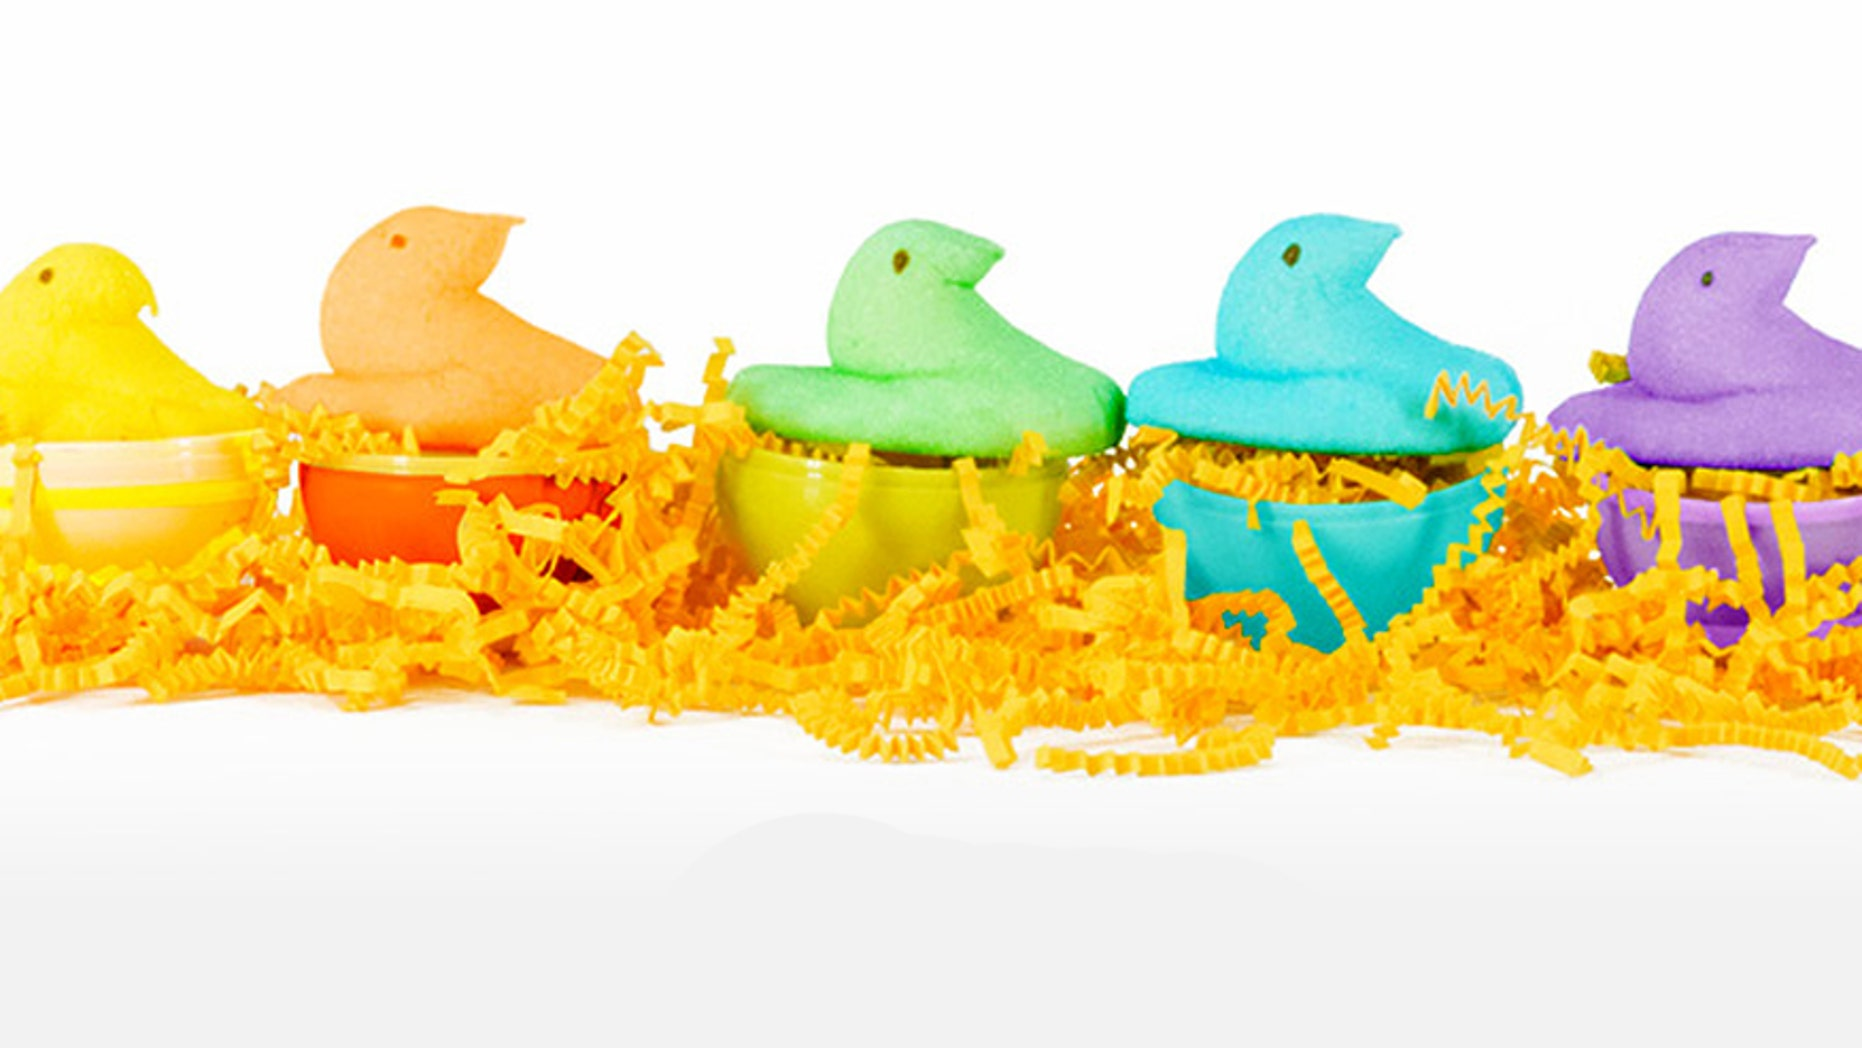 Find out six silly things about your favorite Easter candies.